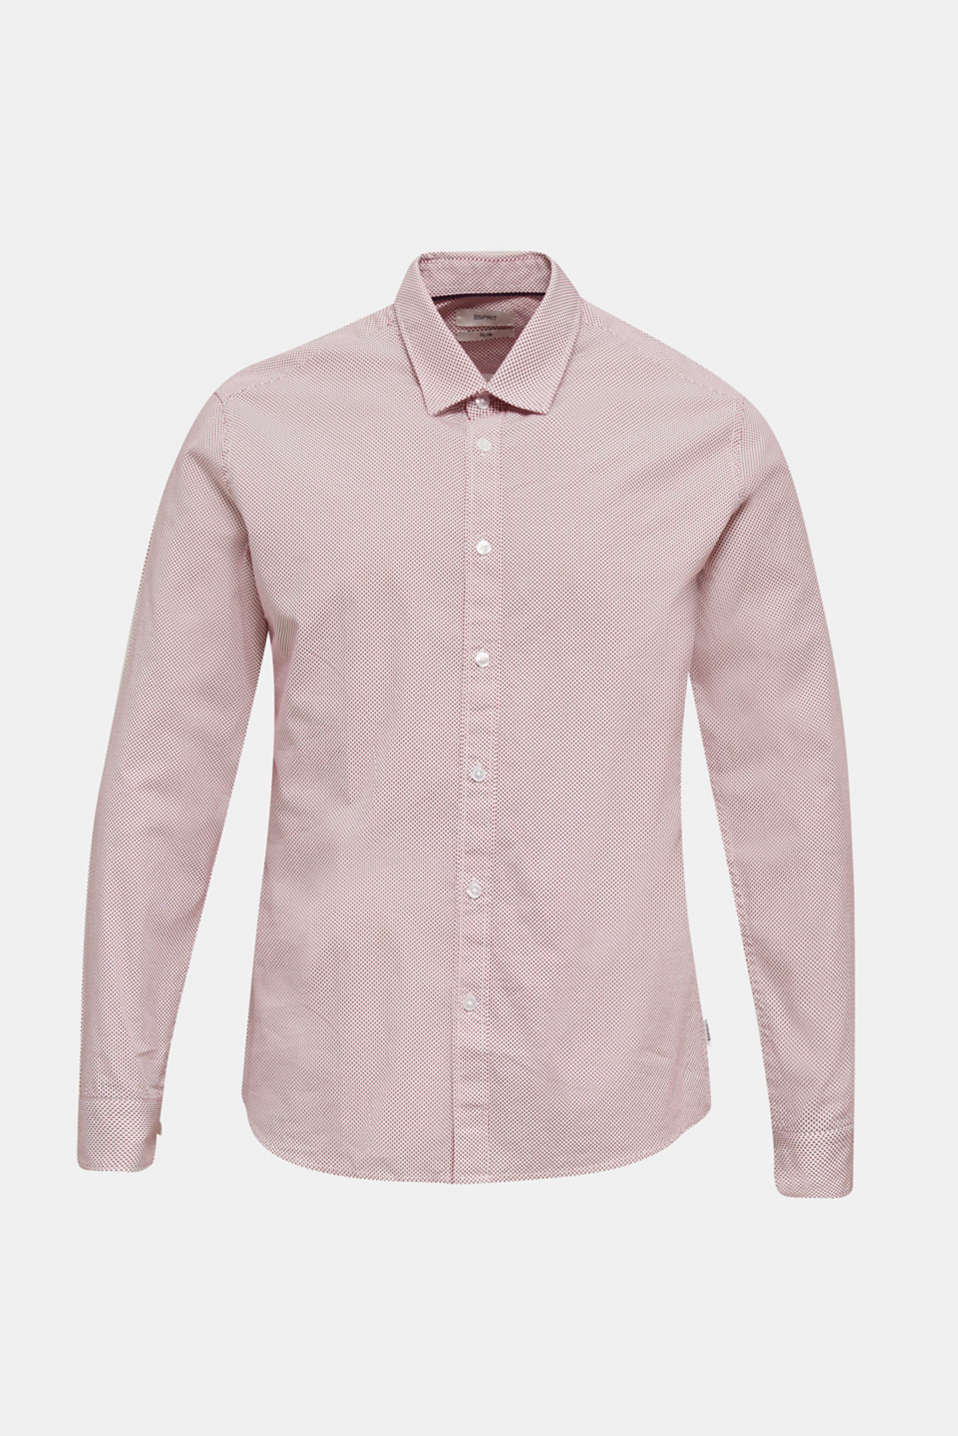 Textured shirt made of 100% cotton, RED 4, detail image number 0